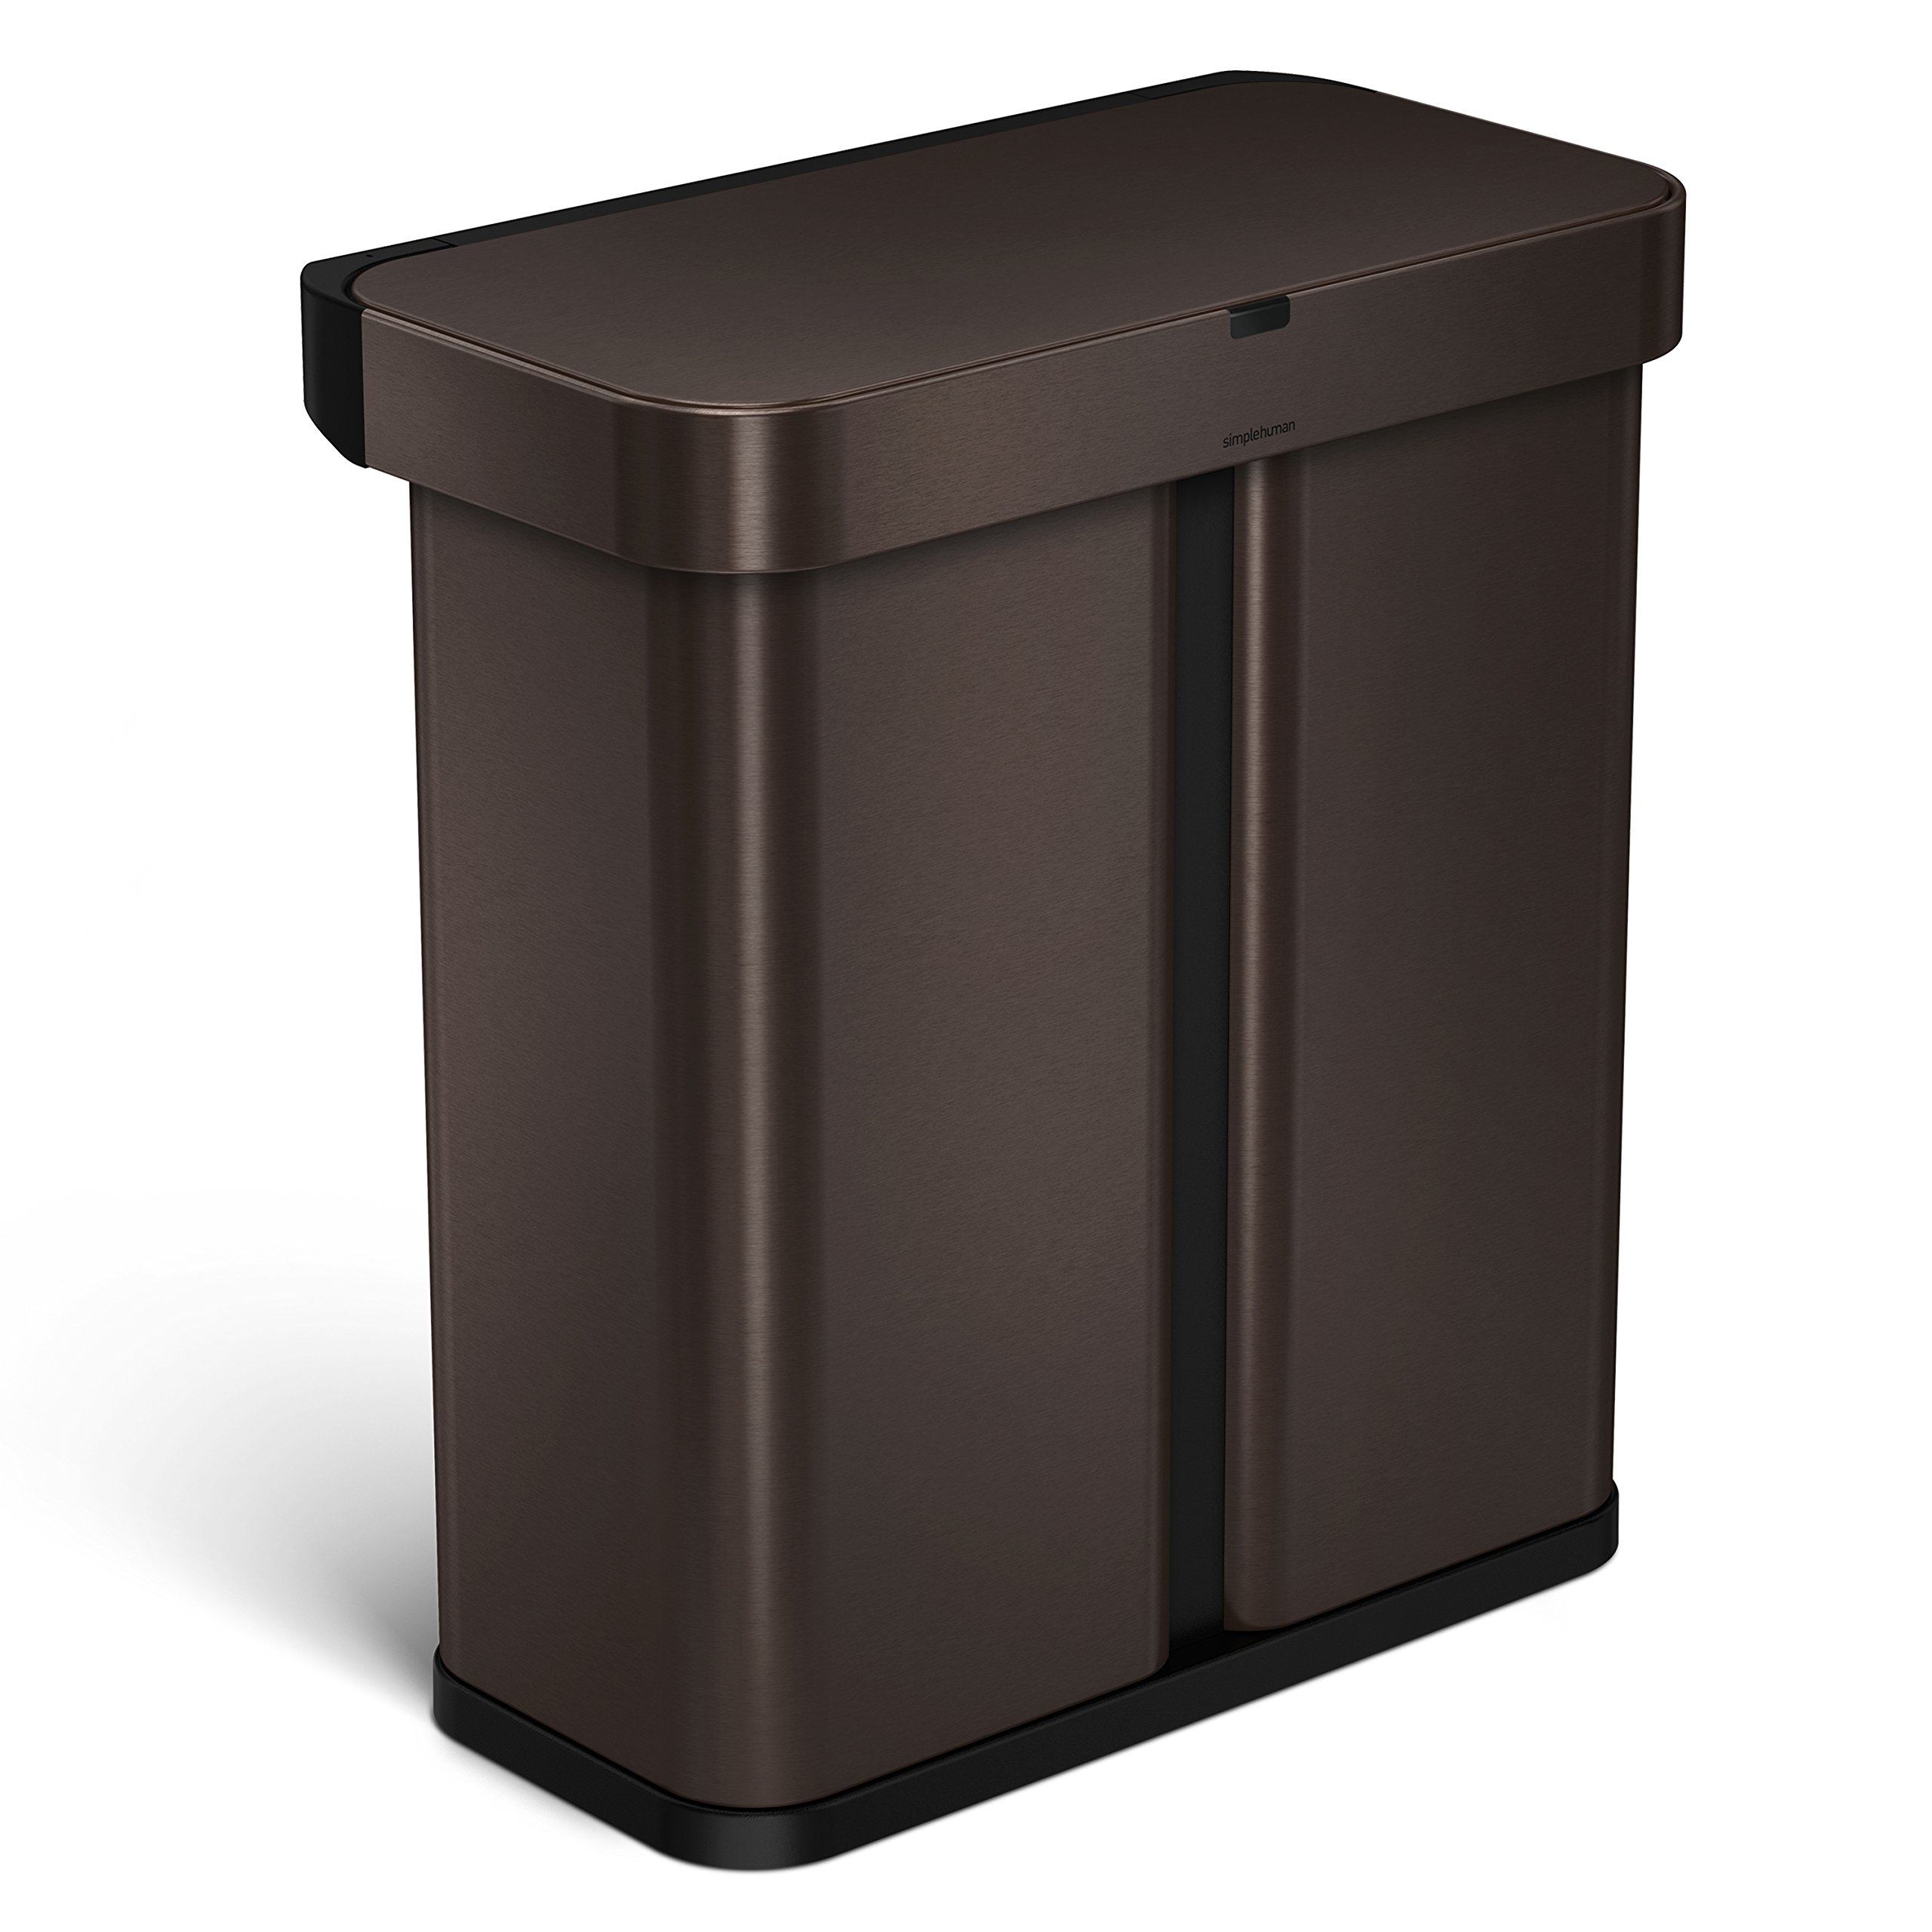 simplehuman 58L  Dual Compartment Rectangular Sensor Trash Can with Voice and Motion Sensor, Touch-Free, Voice Activated, Dark Bronze Stainless Steel, 58 Liters / 15.3 Gallons